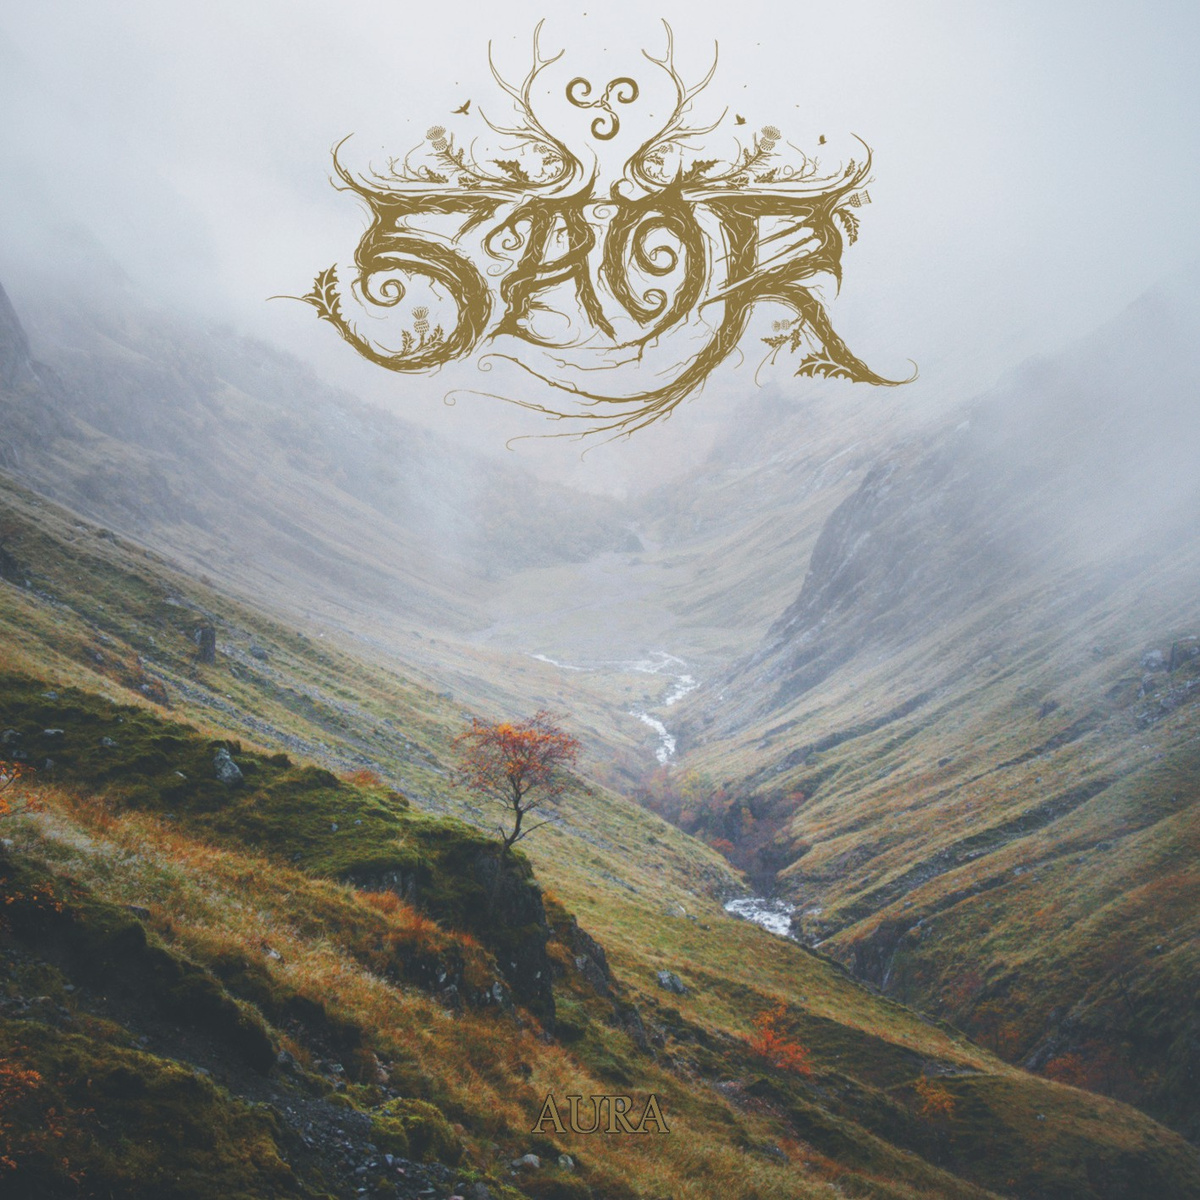 Things You Might Have Missed 2014: Saor – Aura